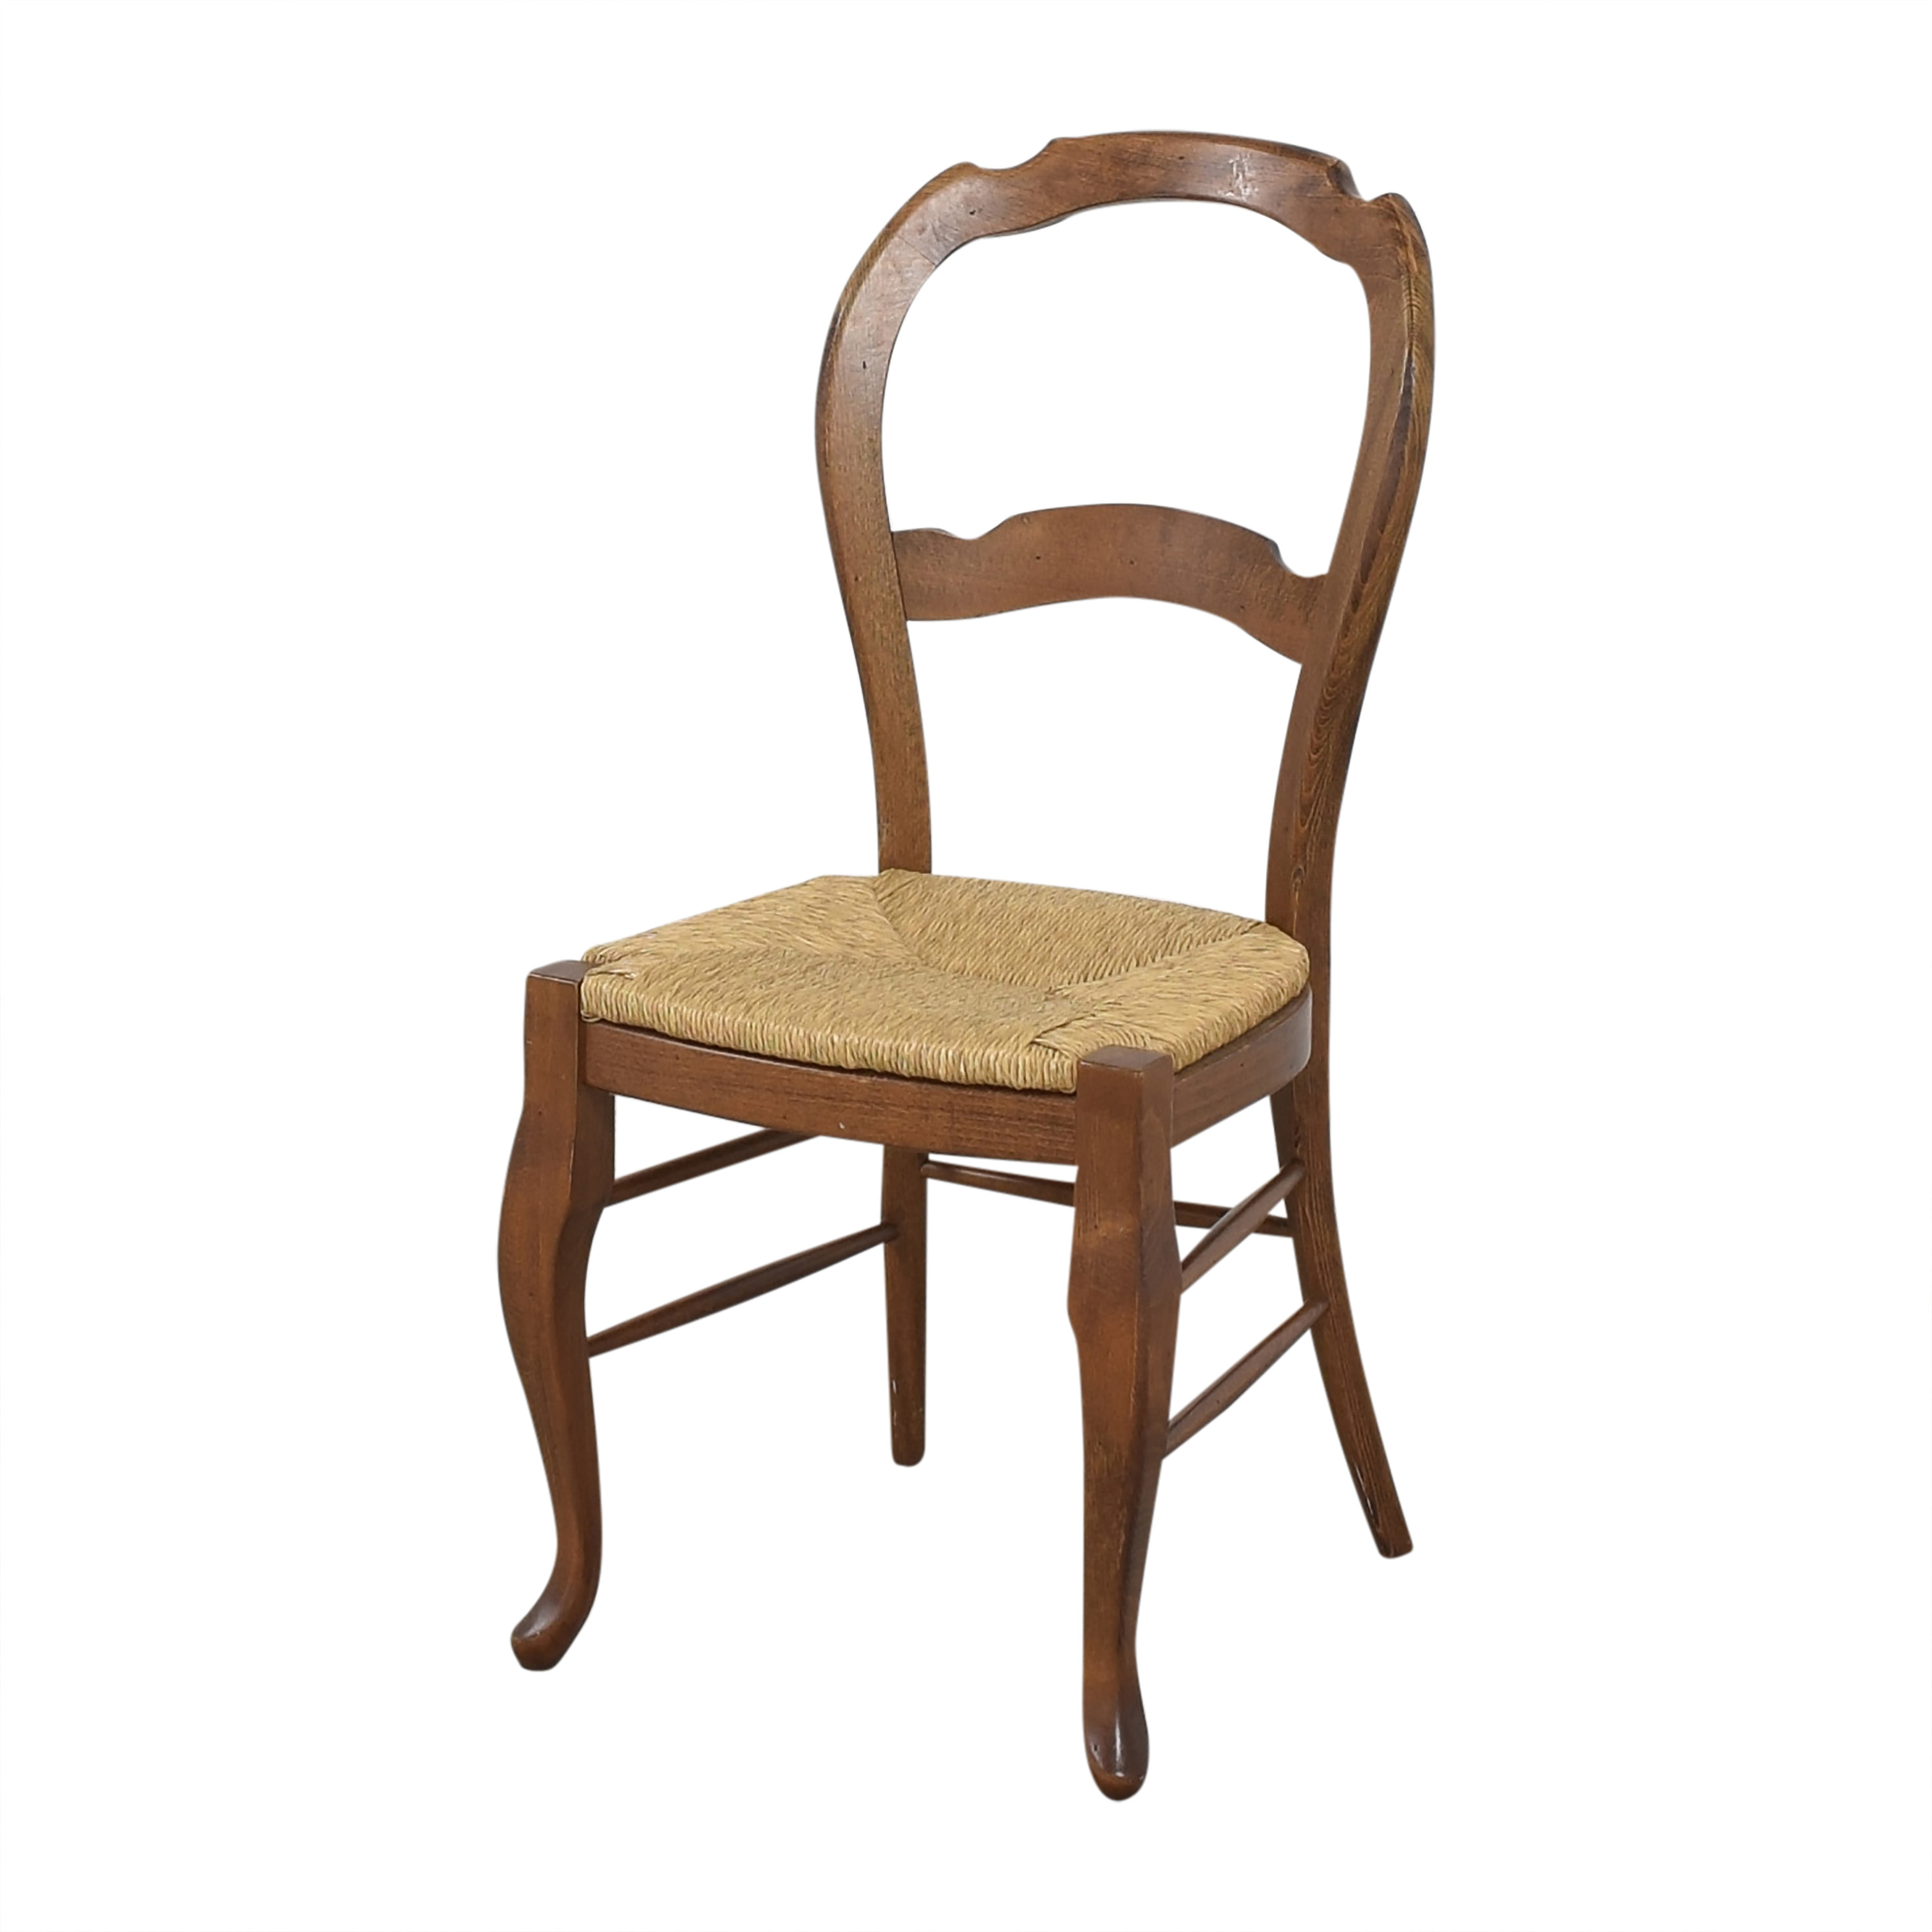 Pottery Barn Pottery Barn Woven Seat Dining Chairs ma